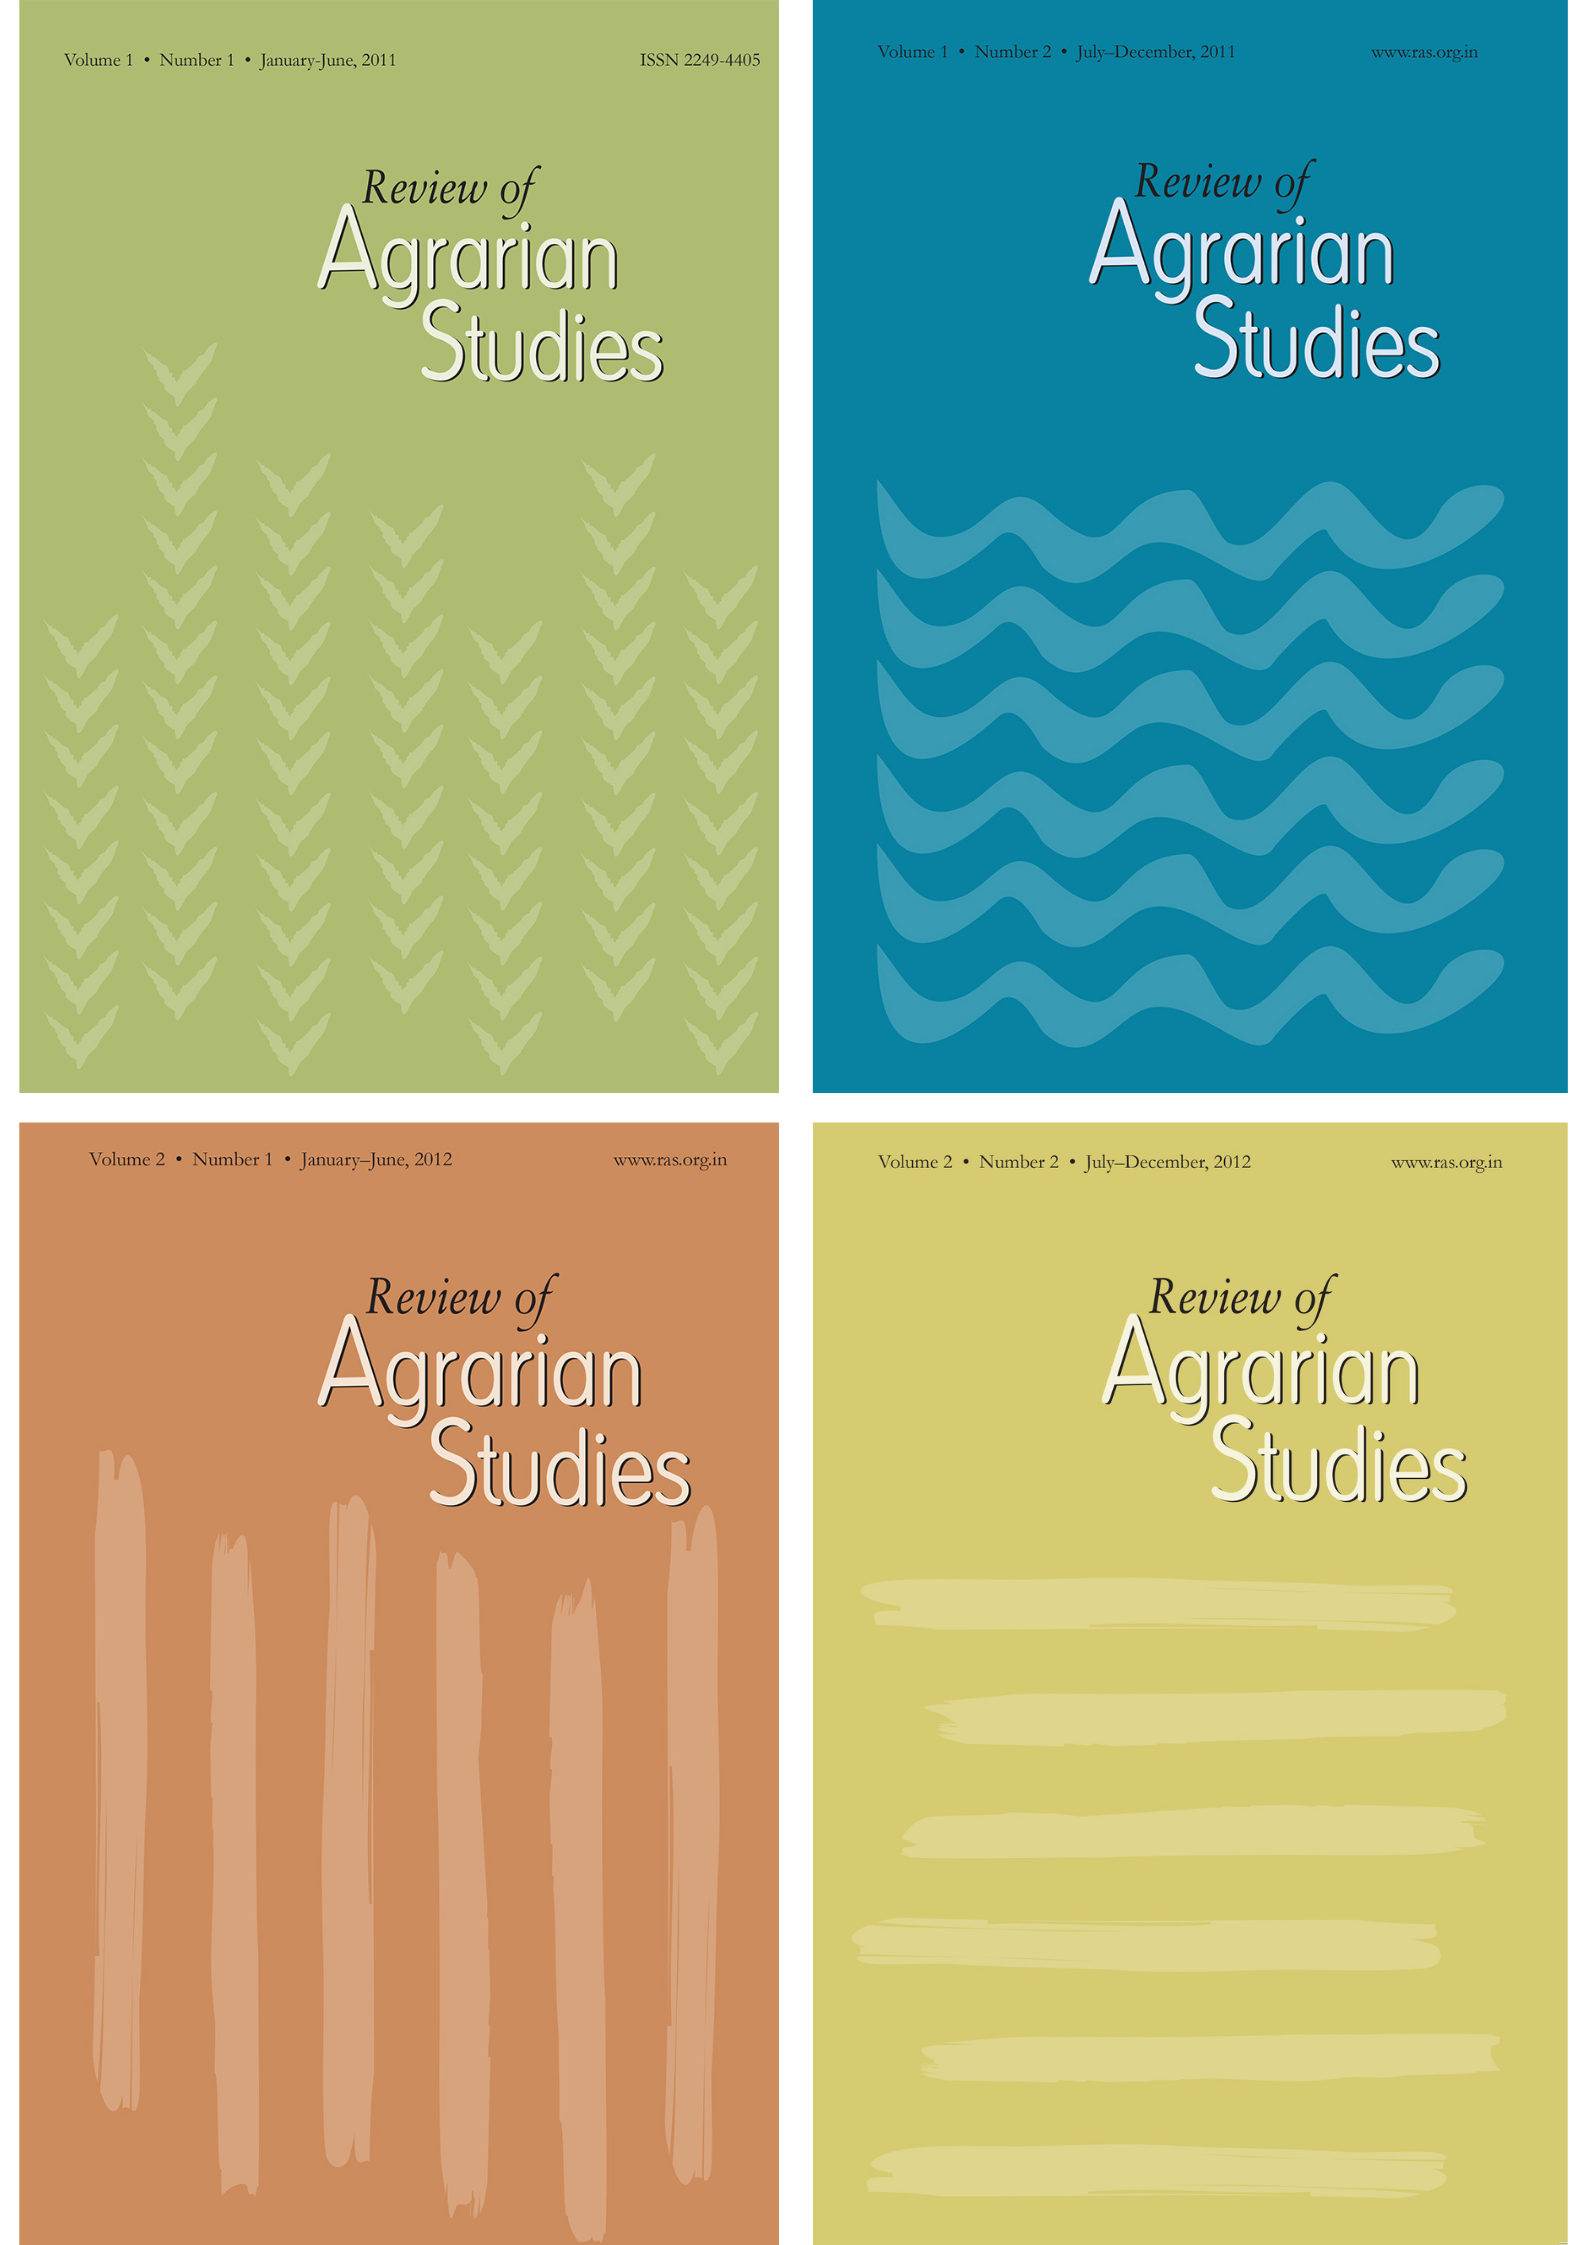 Review of Agrarian Studies sale extended to 15 April...